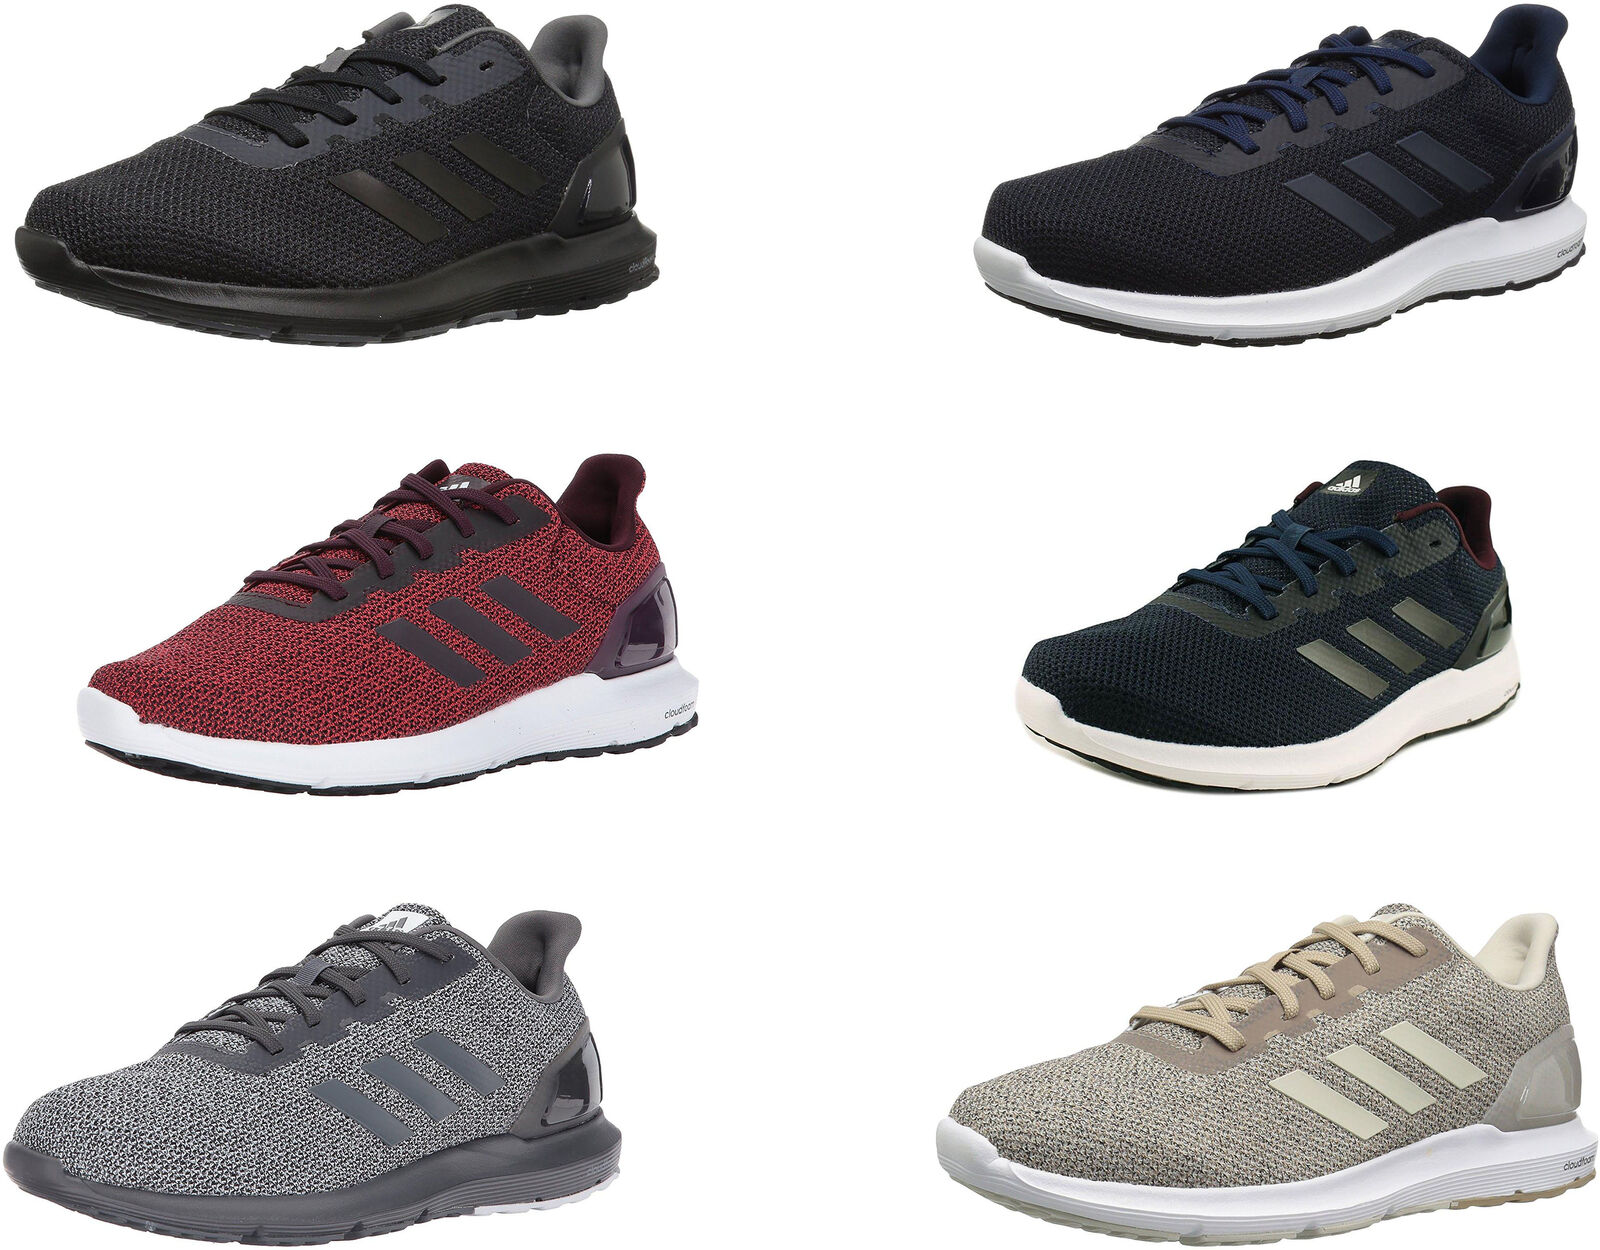 best cheap 91f6e f6b56 adidas Mens Cosmic 2 SL Running Shoes, 6 Colors